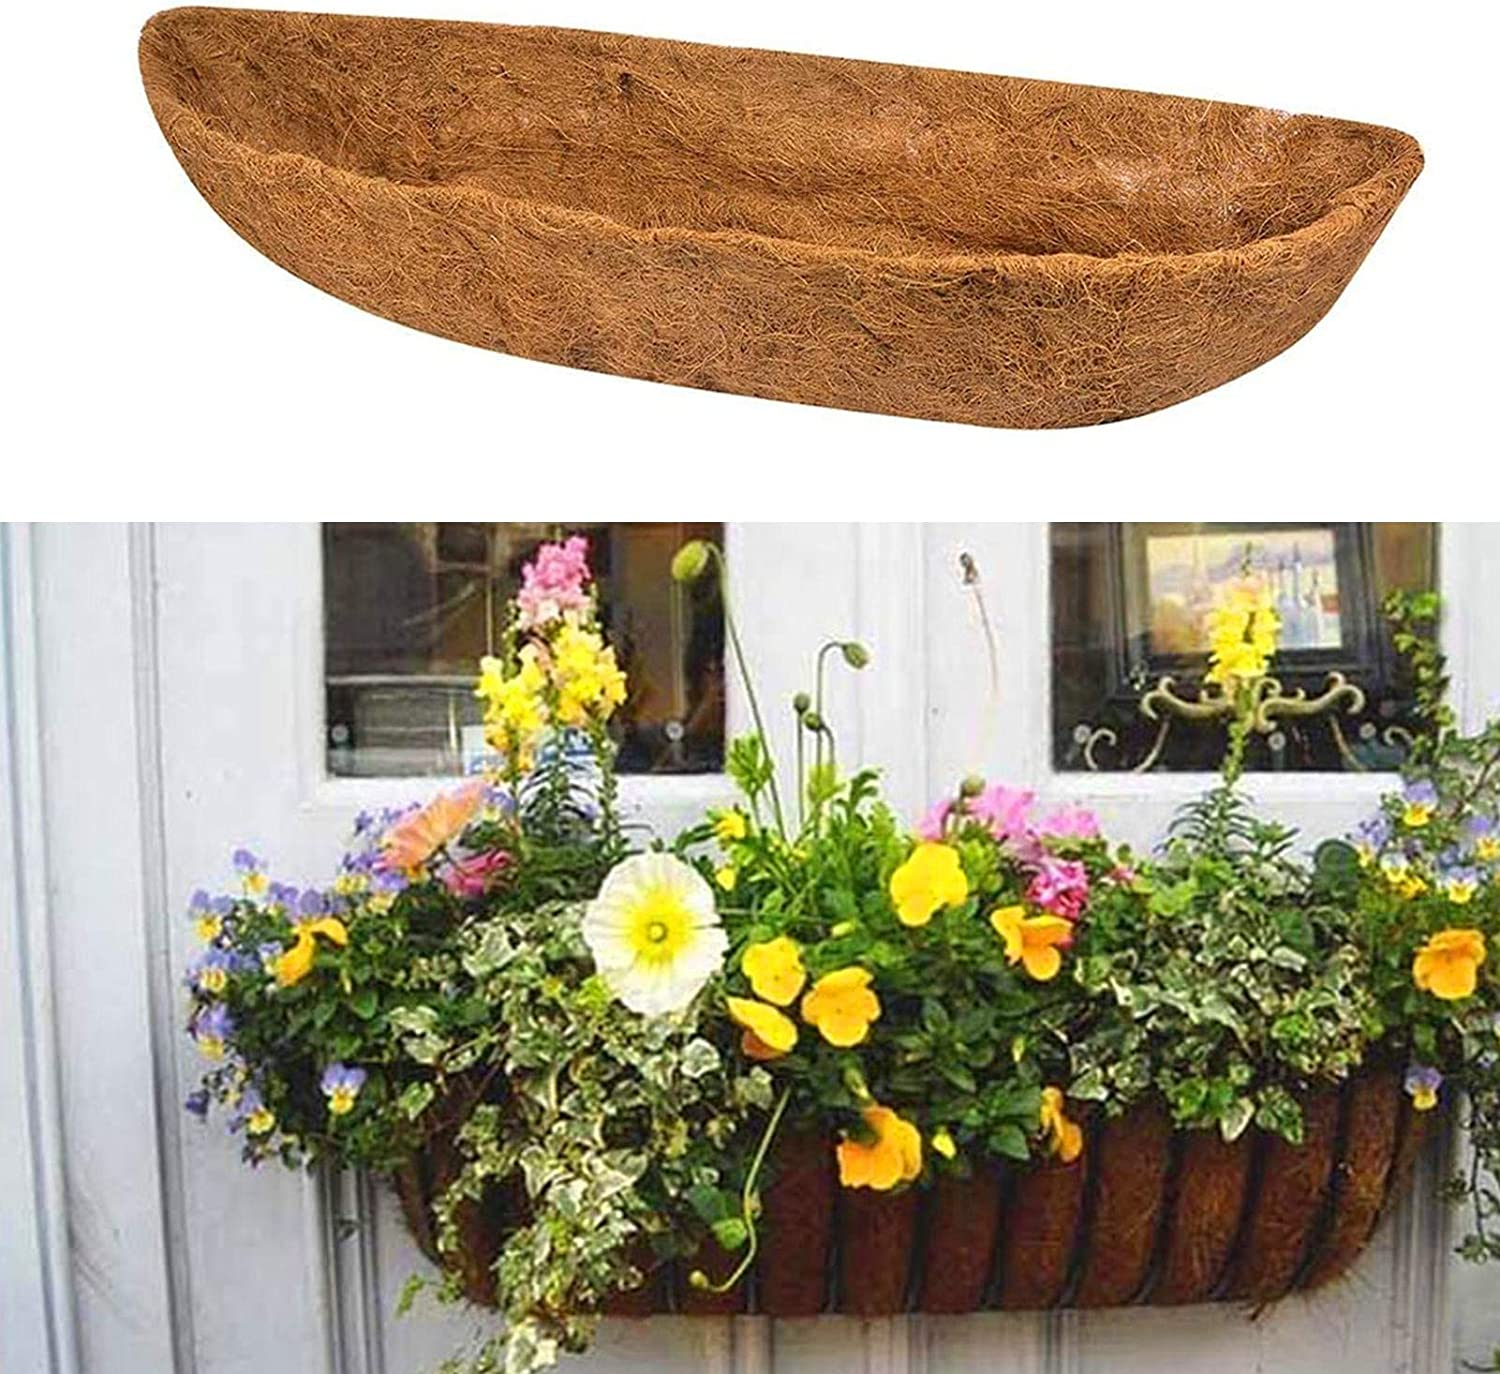 BerryChips Horse Trough Coco Fiber Selling and Manufacturer direct delivery selling Replacement Natural Liner 24